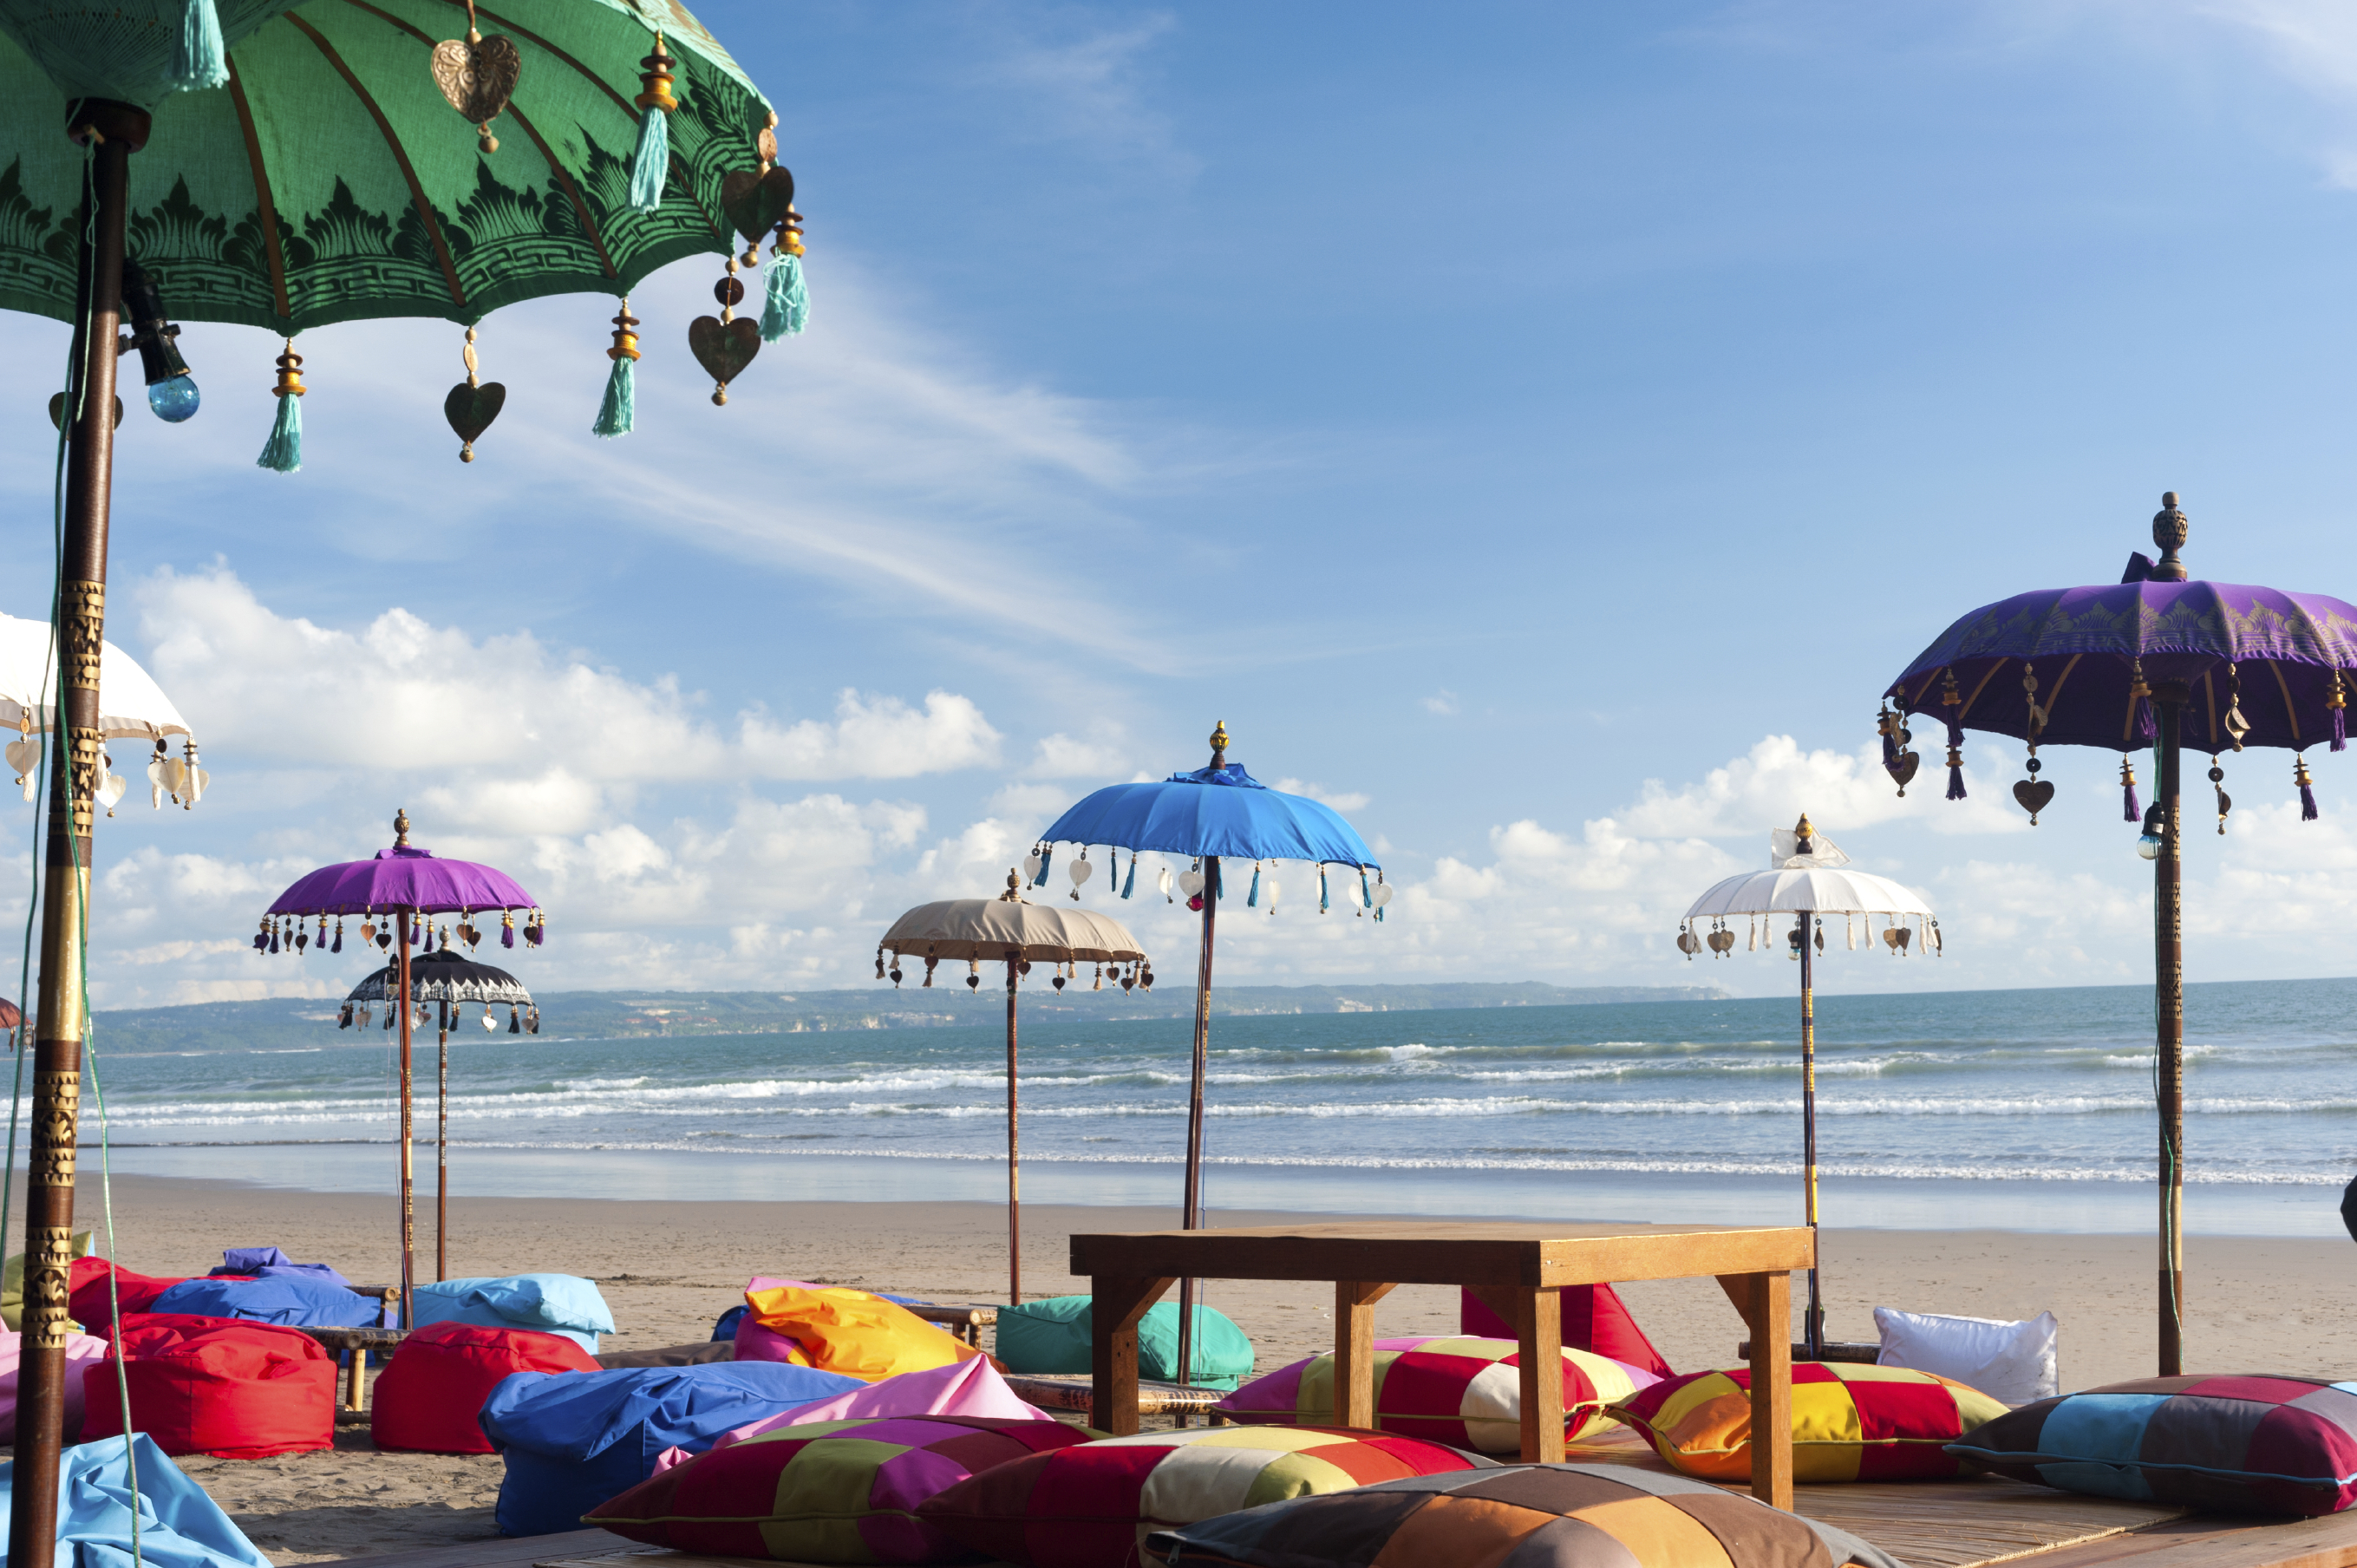 This image shows some colourful beach umbreallas and pillows in Kuta, Bali